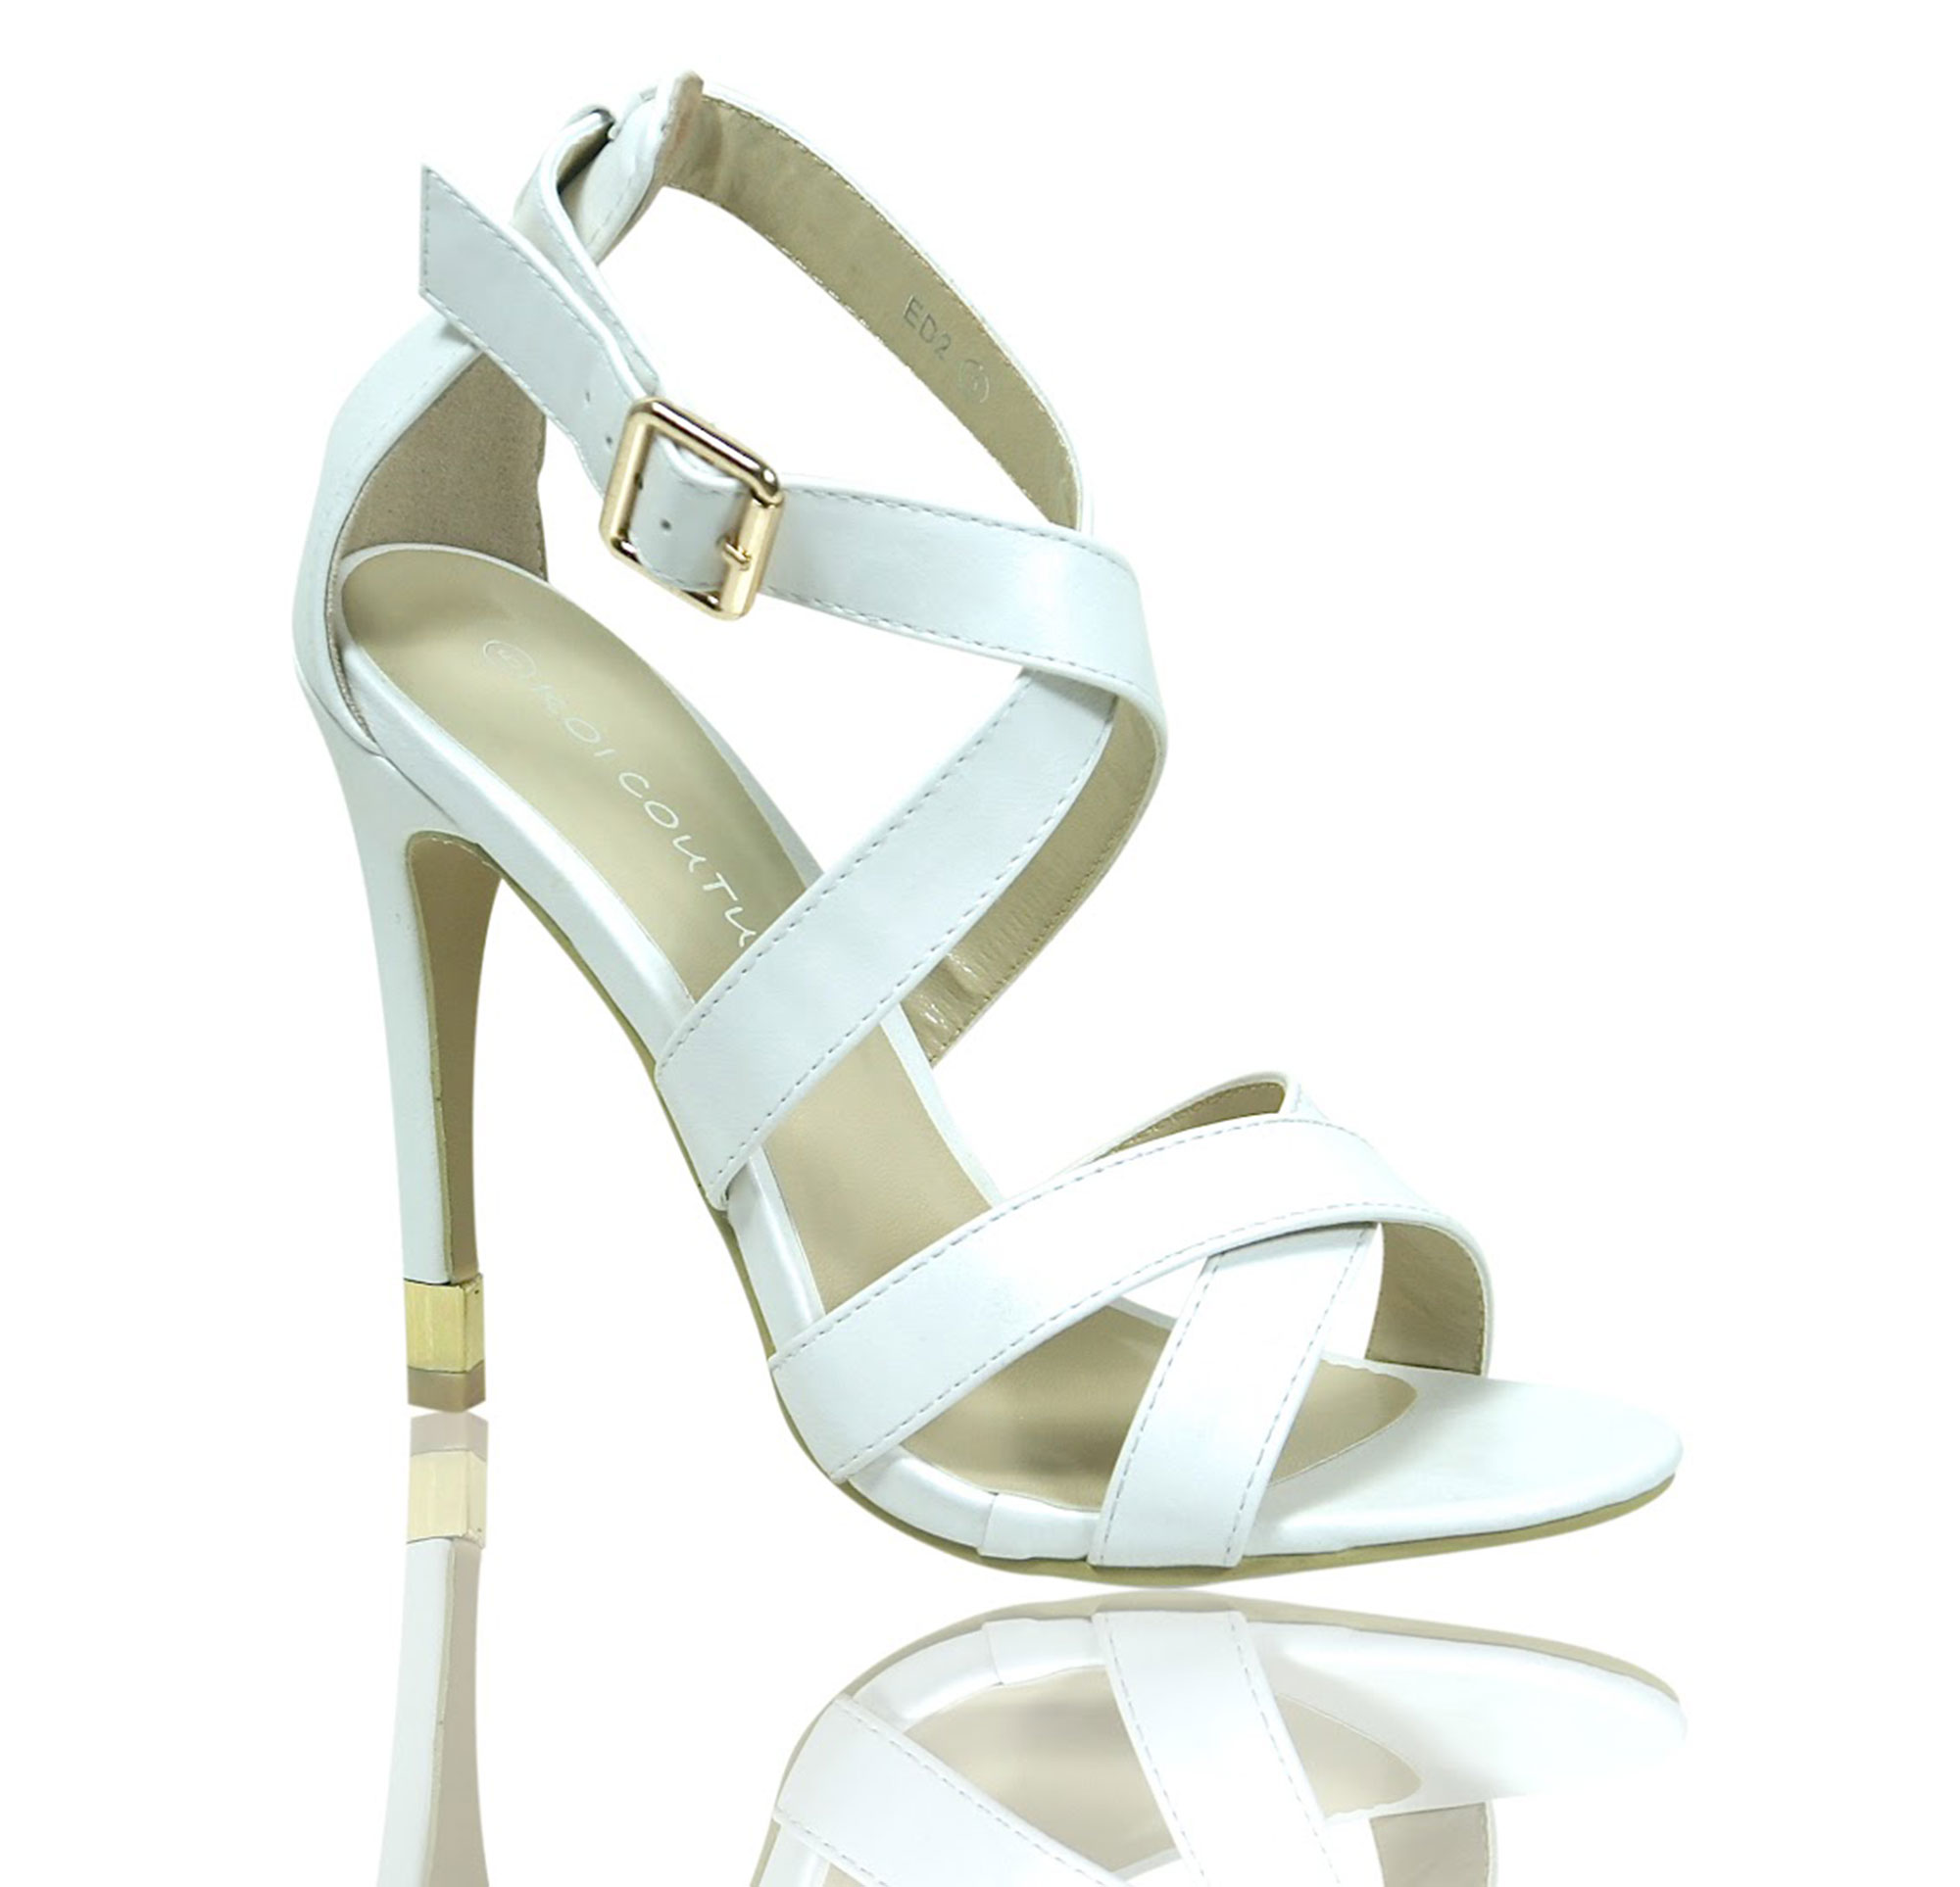 3e9fa2049001f STRAPPY SANDALS STILETTO HEEL ANKLE STRAP BUCKLE HIGH HEELS SHOES ...